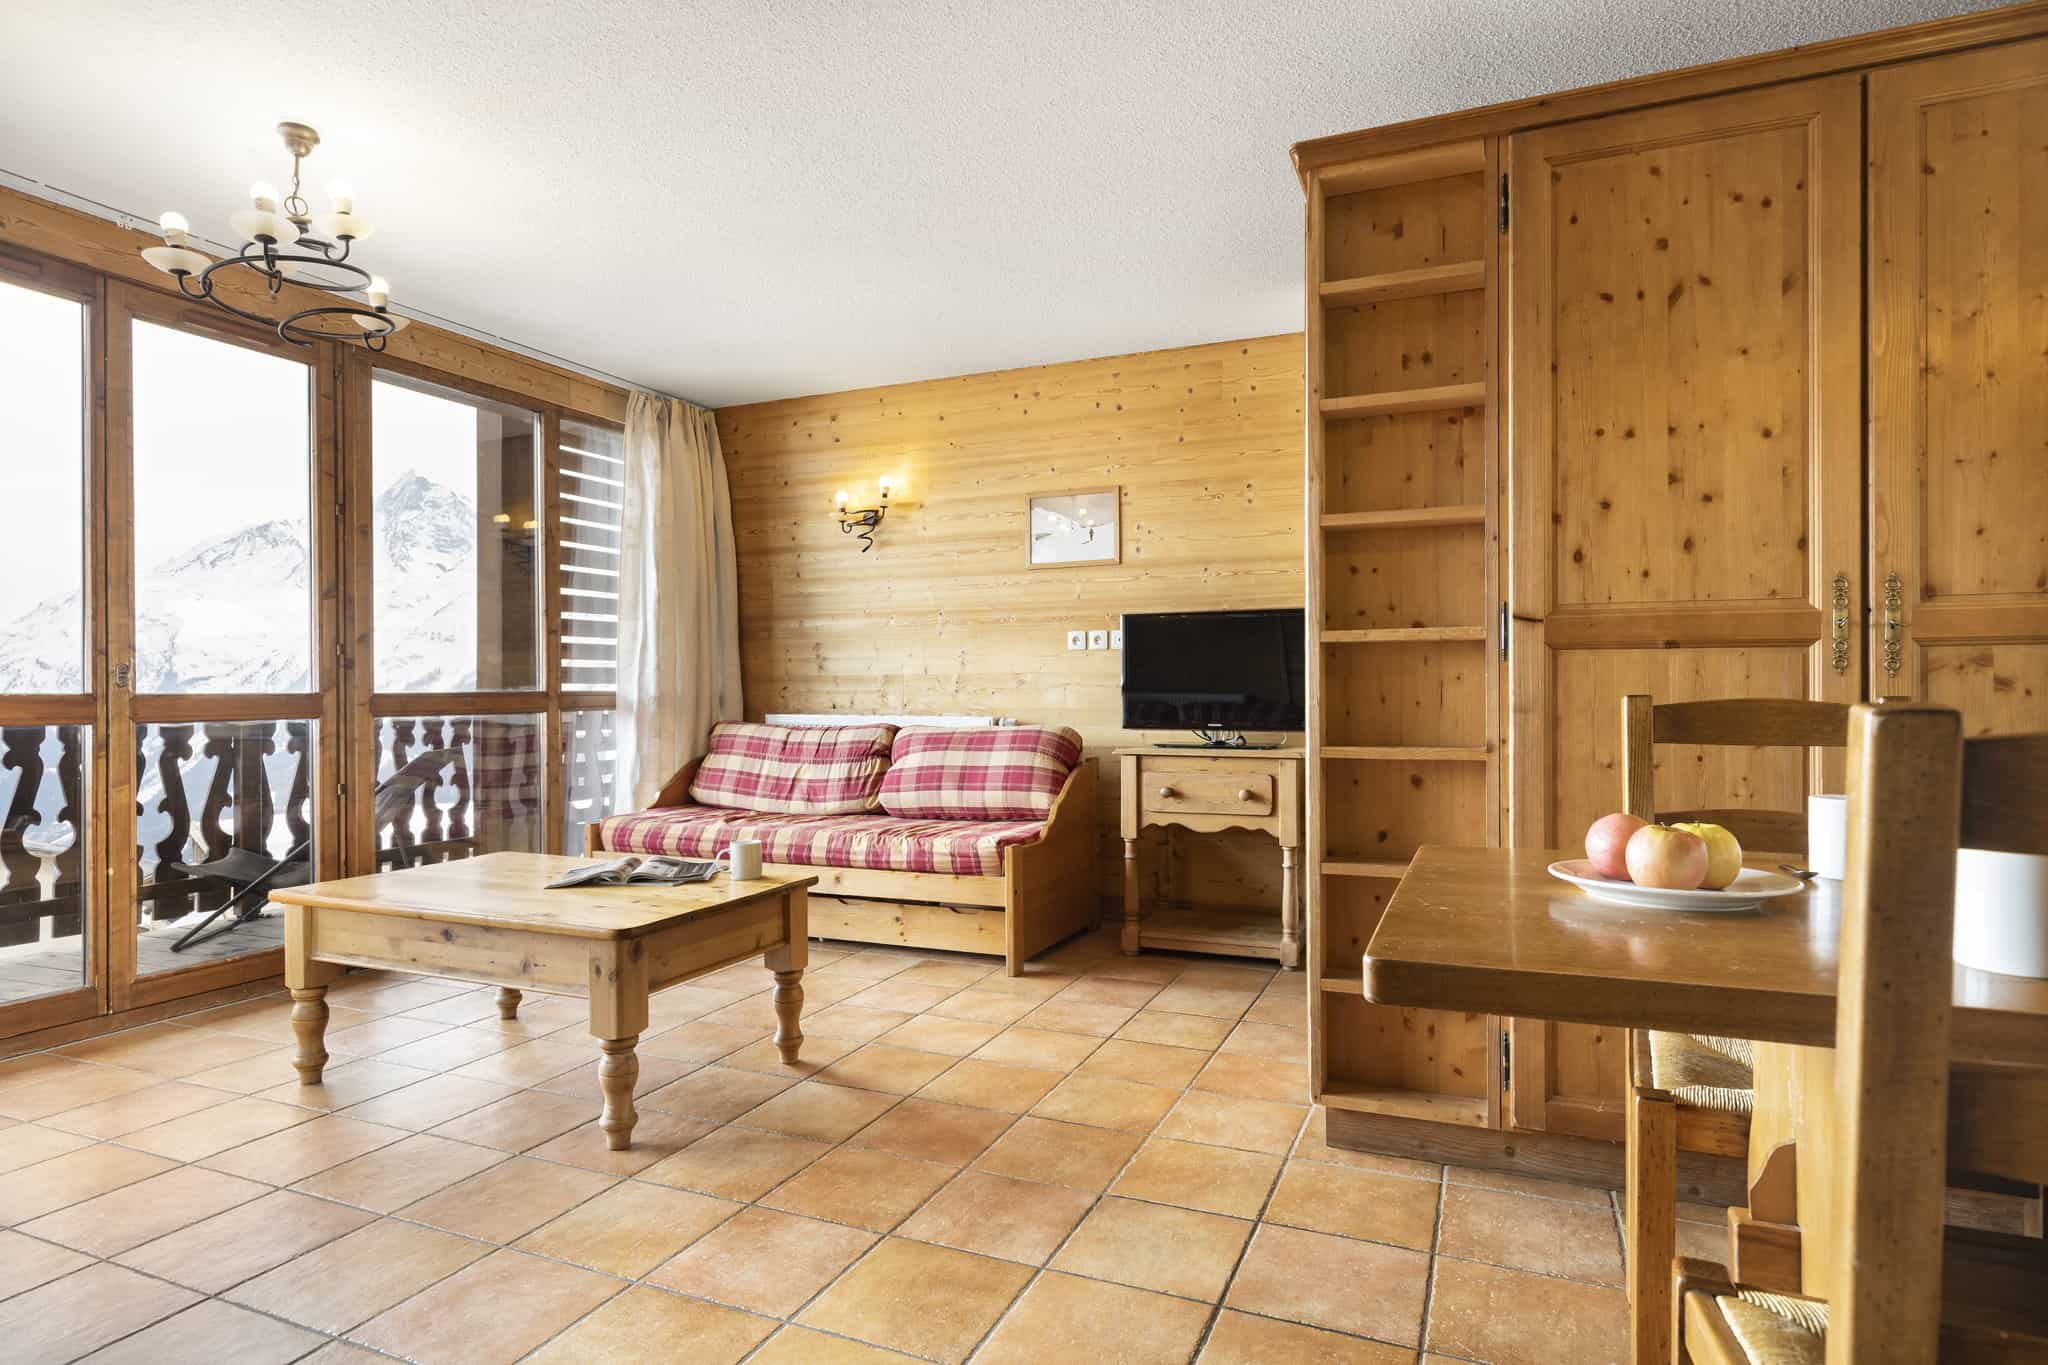 1-BLR-Types-Appartement-6-8pers-sejour